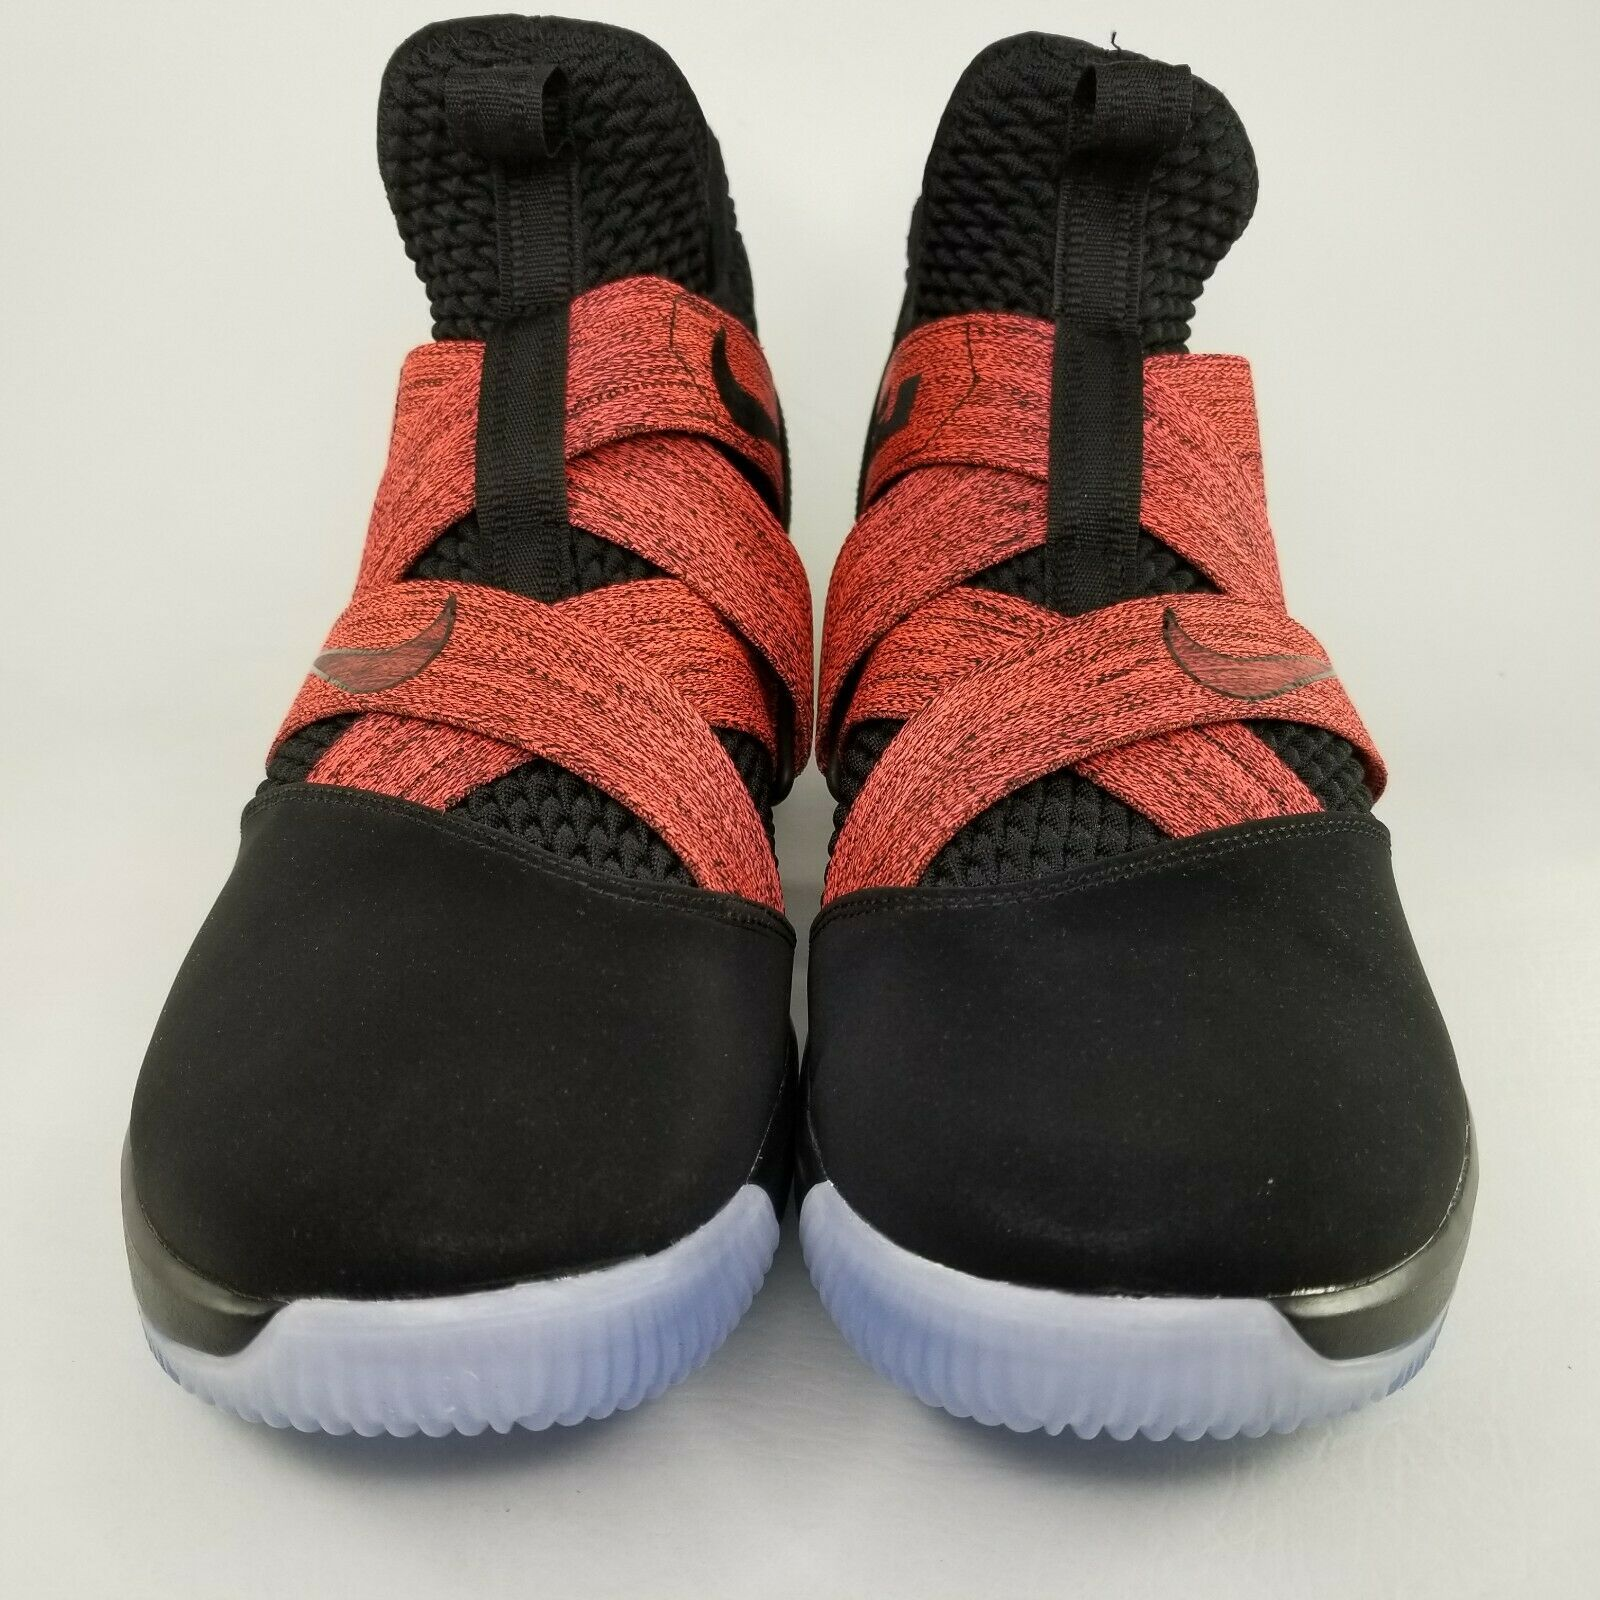 Nike LeBron Soldier XII 12 Bred Basketball Shoes Size 13 Mens Black Red